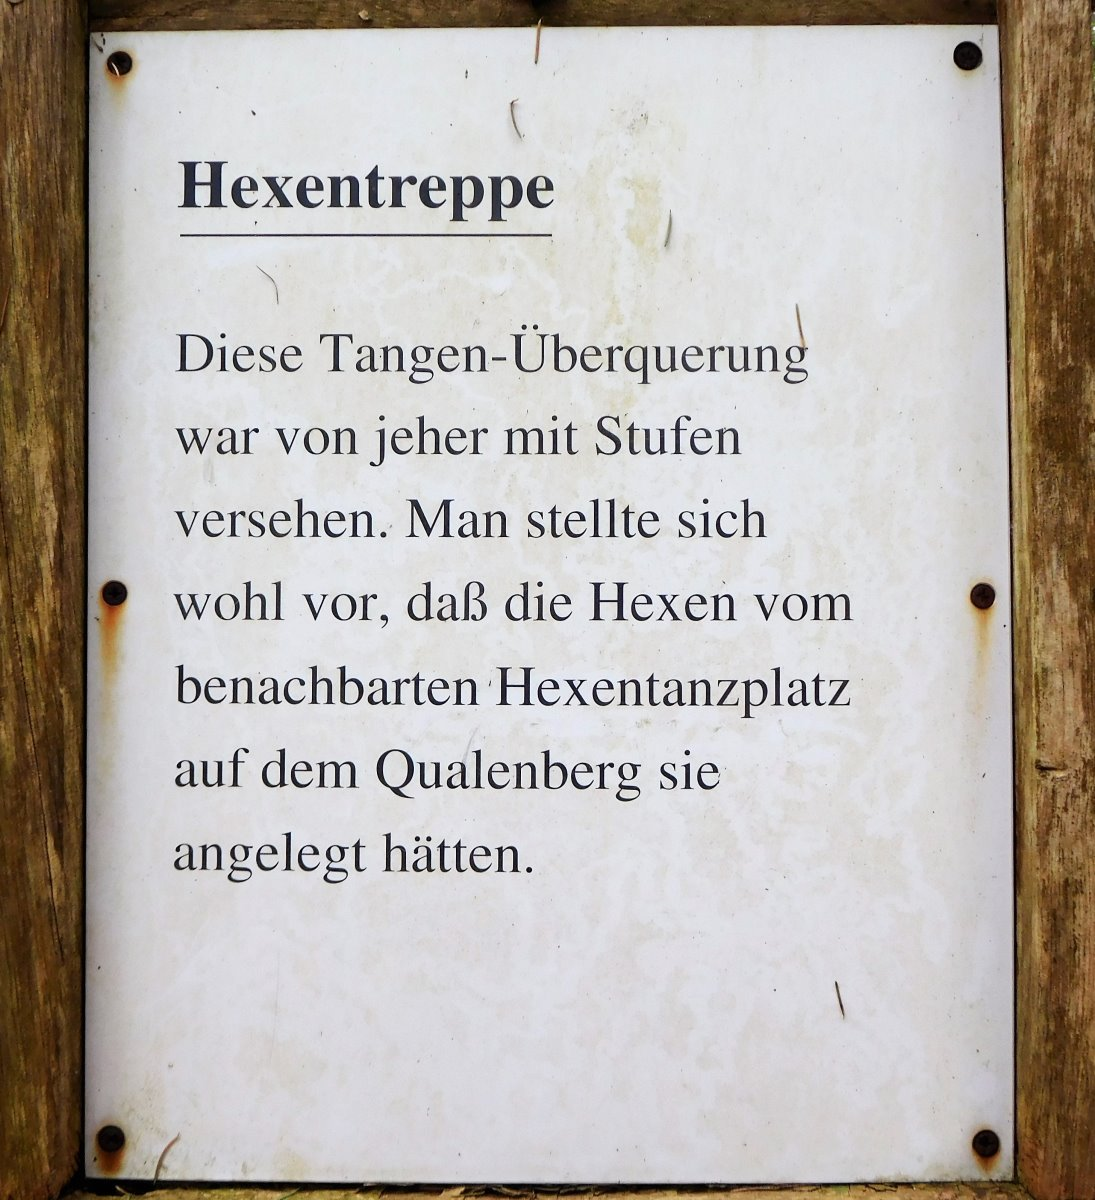 Hexentreppe